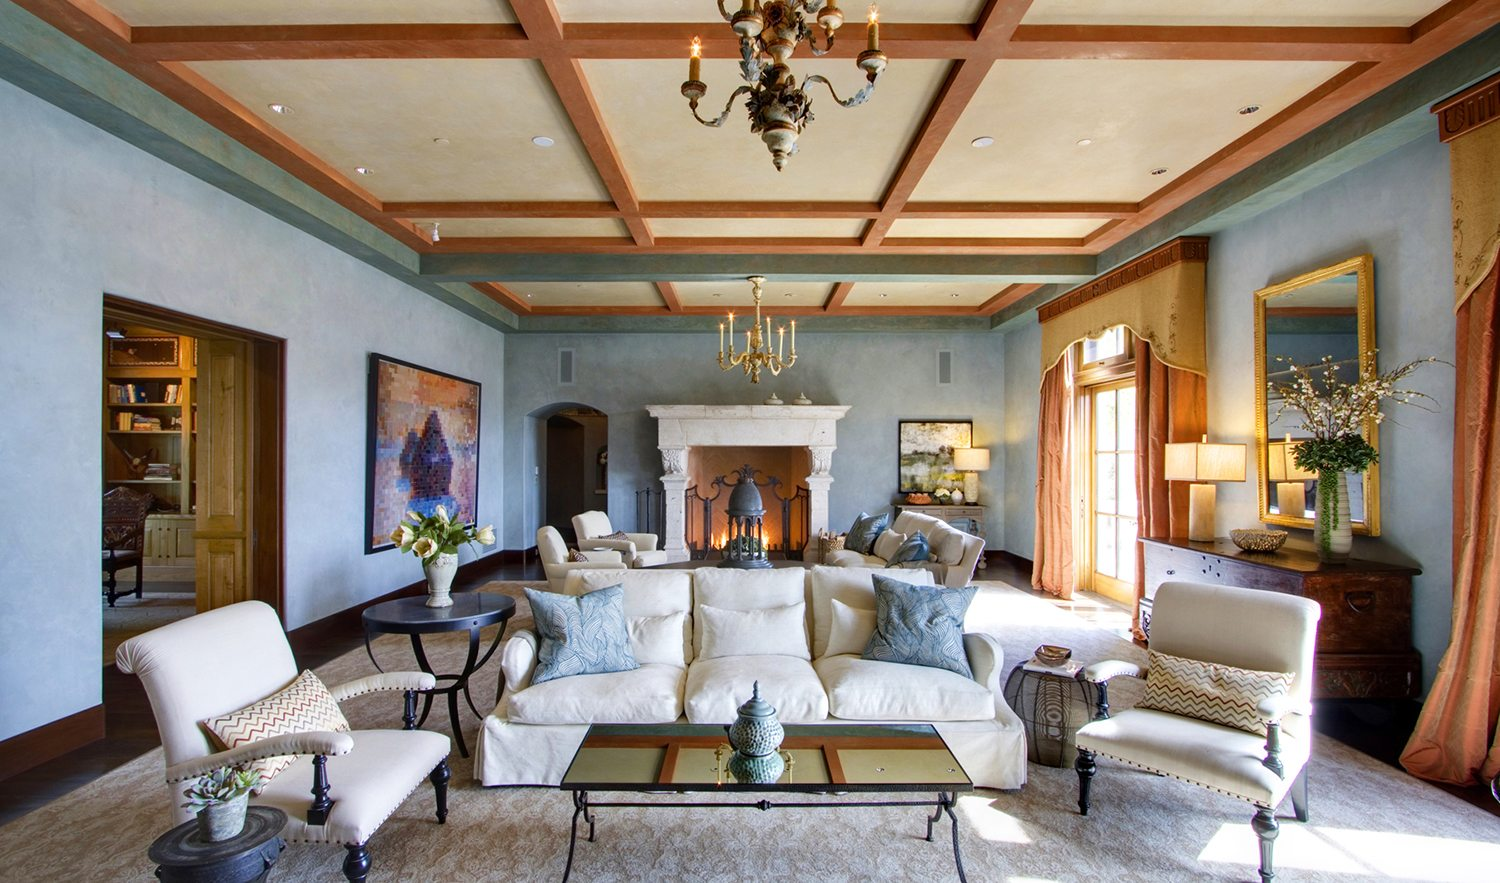 Beau ... Williams In The Early 2000s And Features An Approximately 20,000 Square  Foot Mediterranean Style Villa With Five Bedrooms, Six Full And Five Half  Baths.